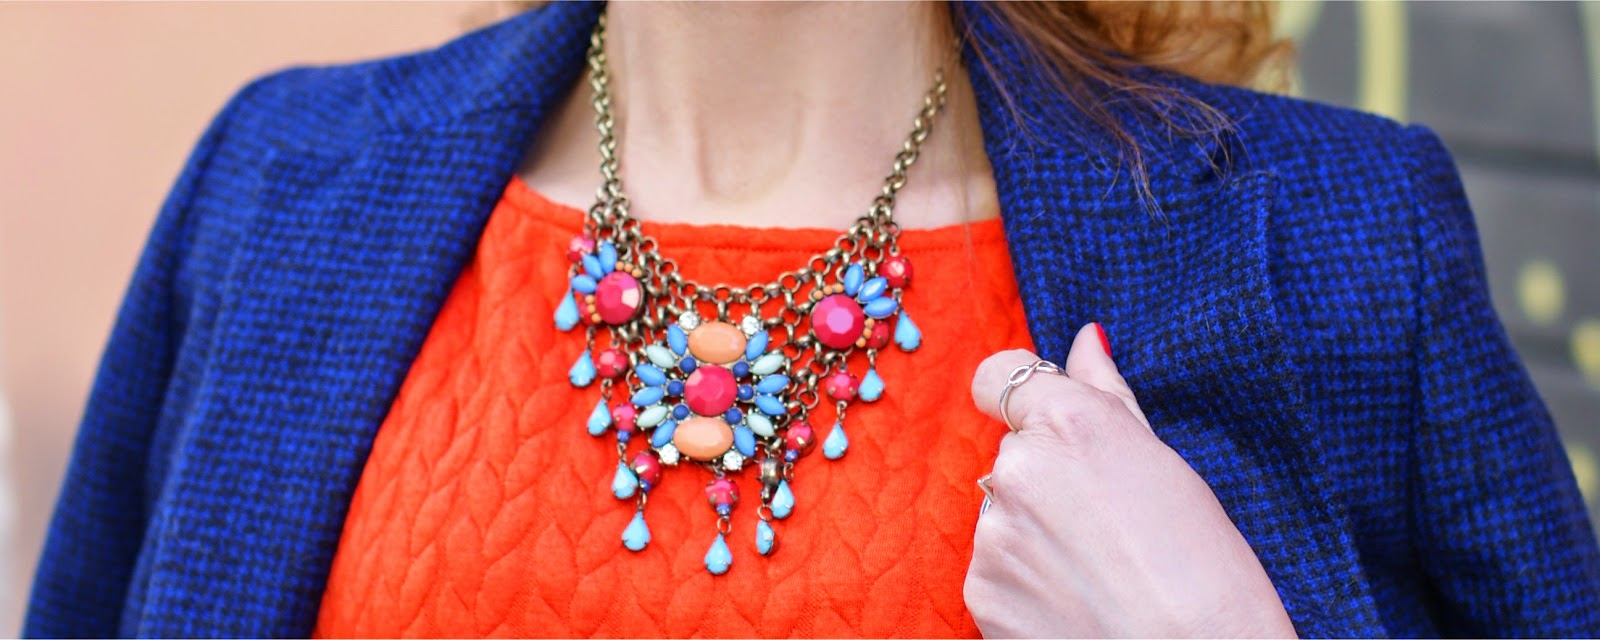 Helene Berman coat, bijou brigitte necklace, Fashion and Cookies fashion blog, fashion blogger